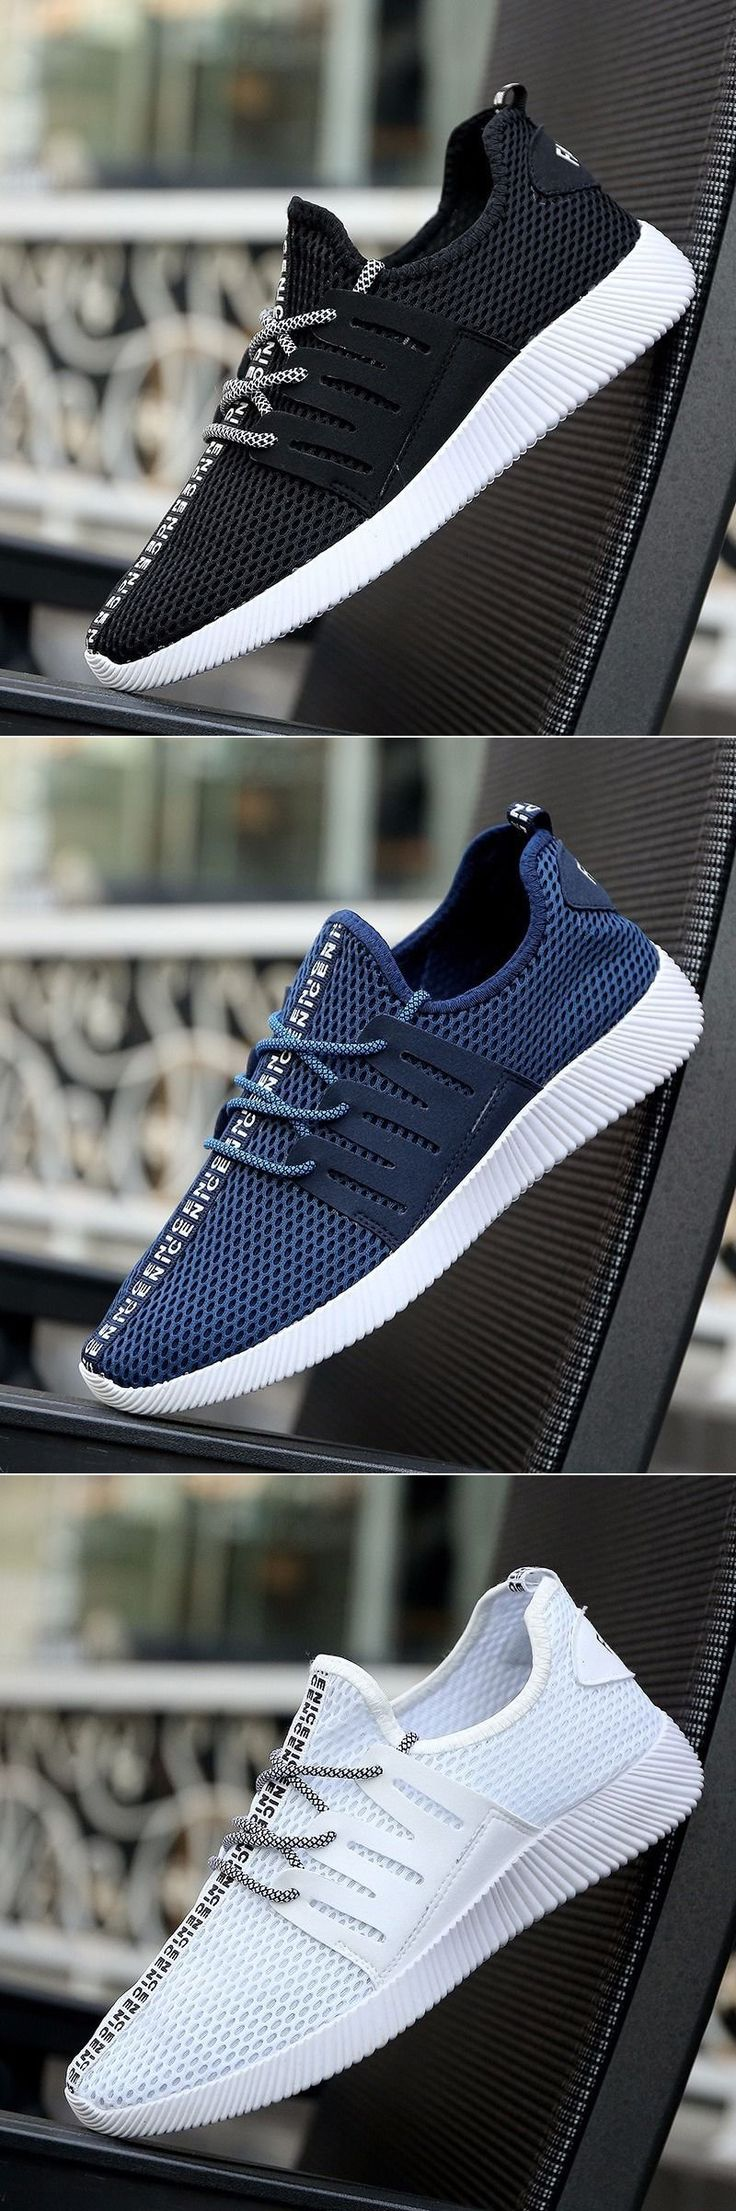 Men Mesh Fabric Breathable Casual Light Running Shoes Slip On Sneakers